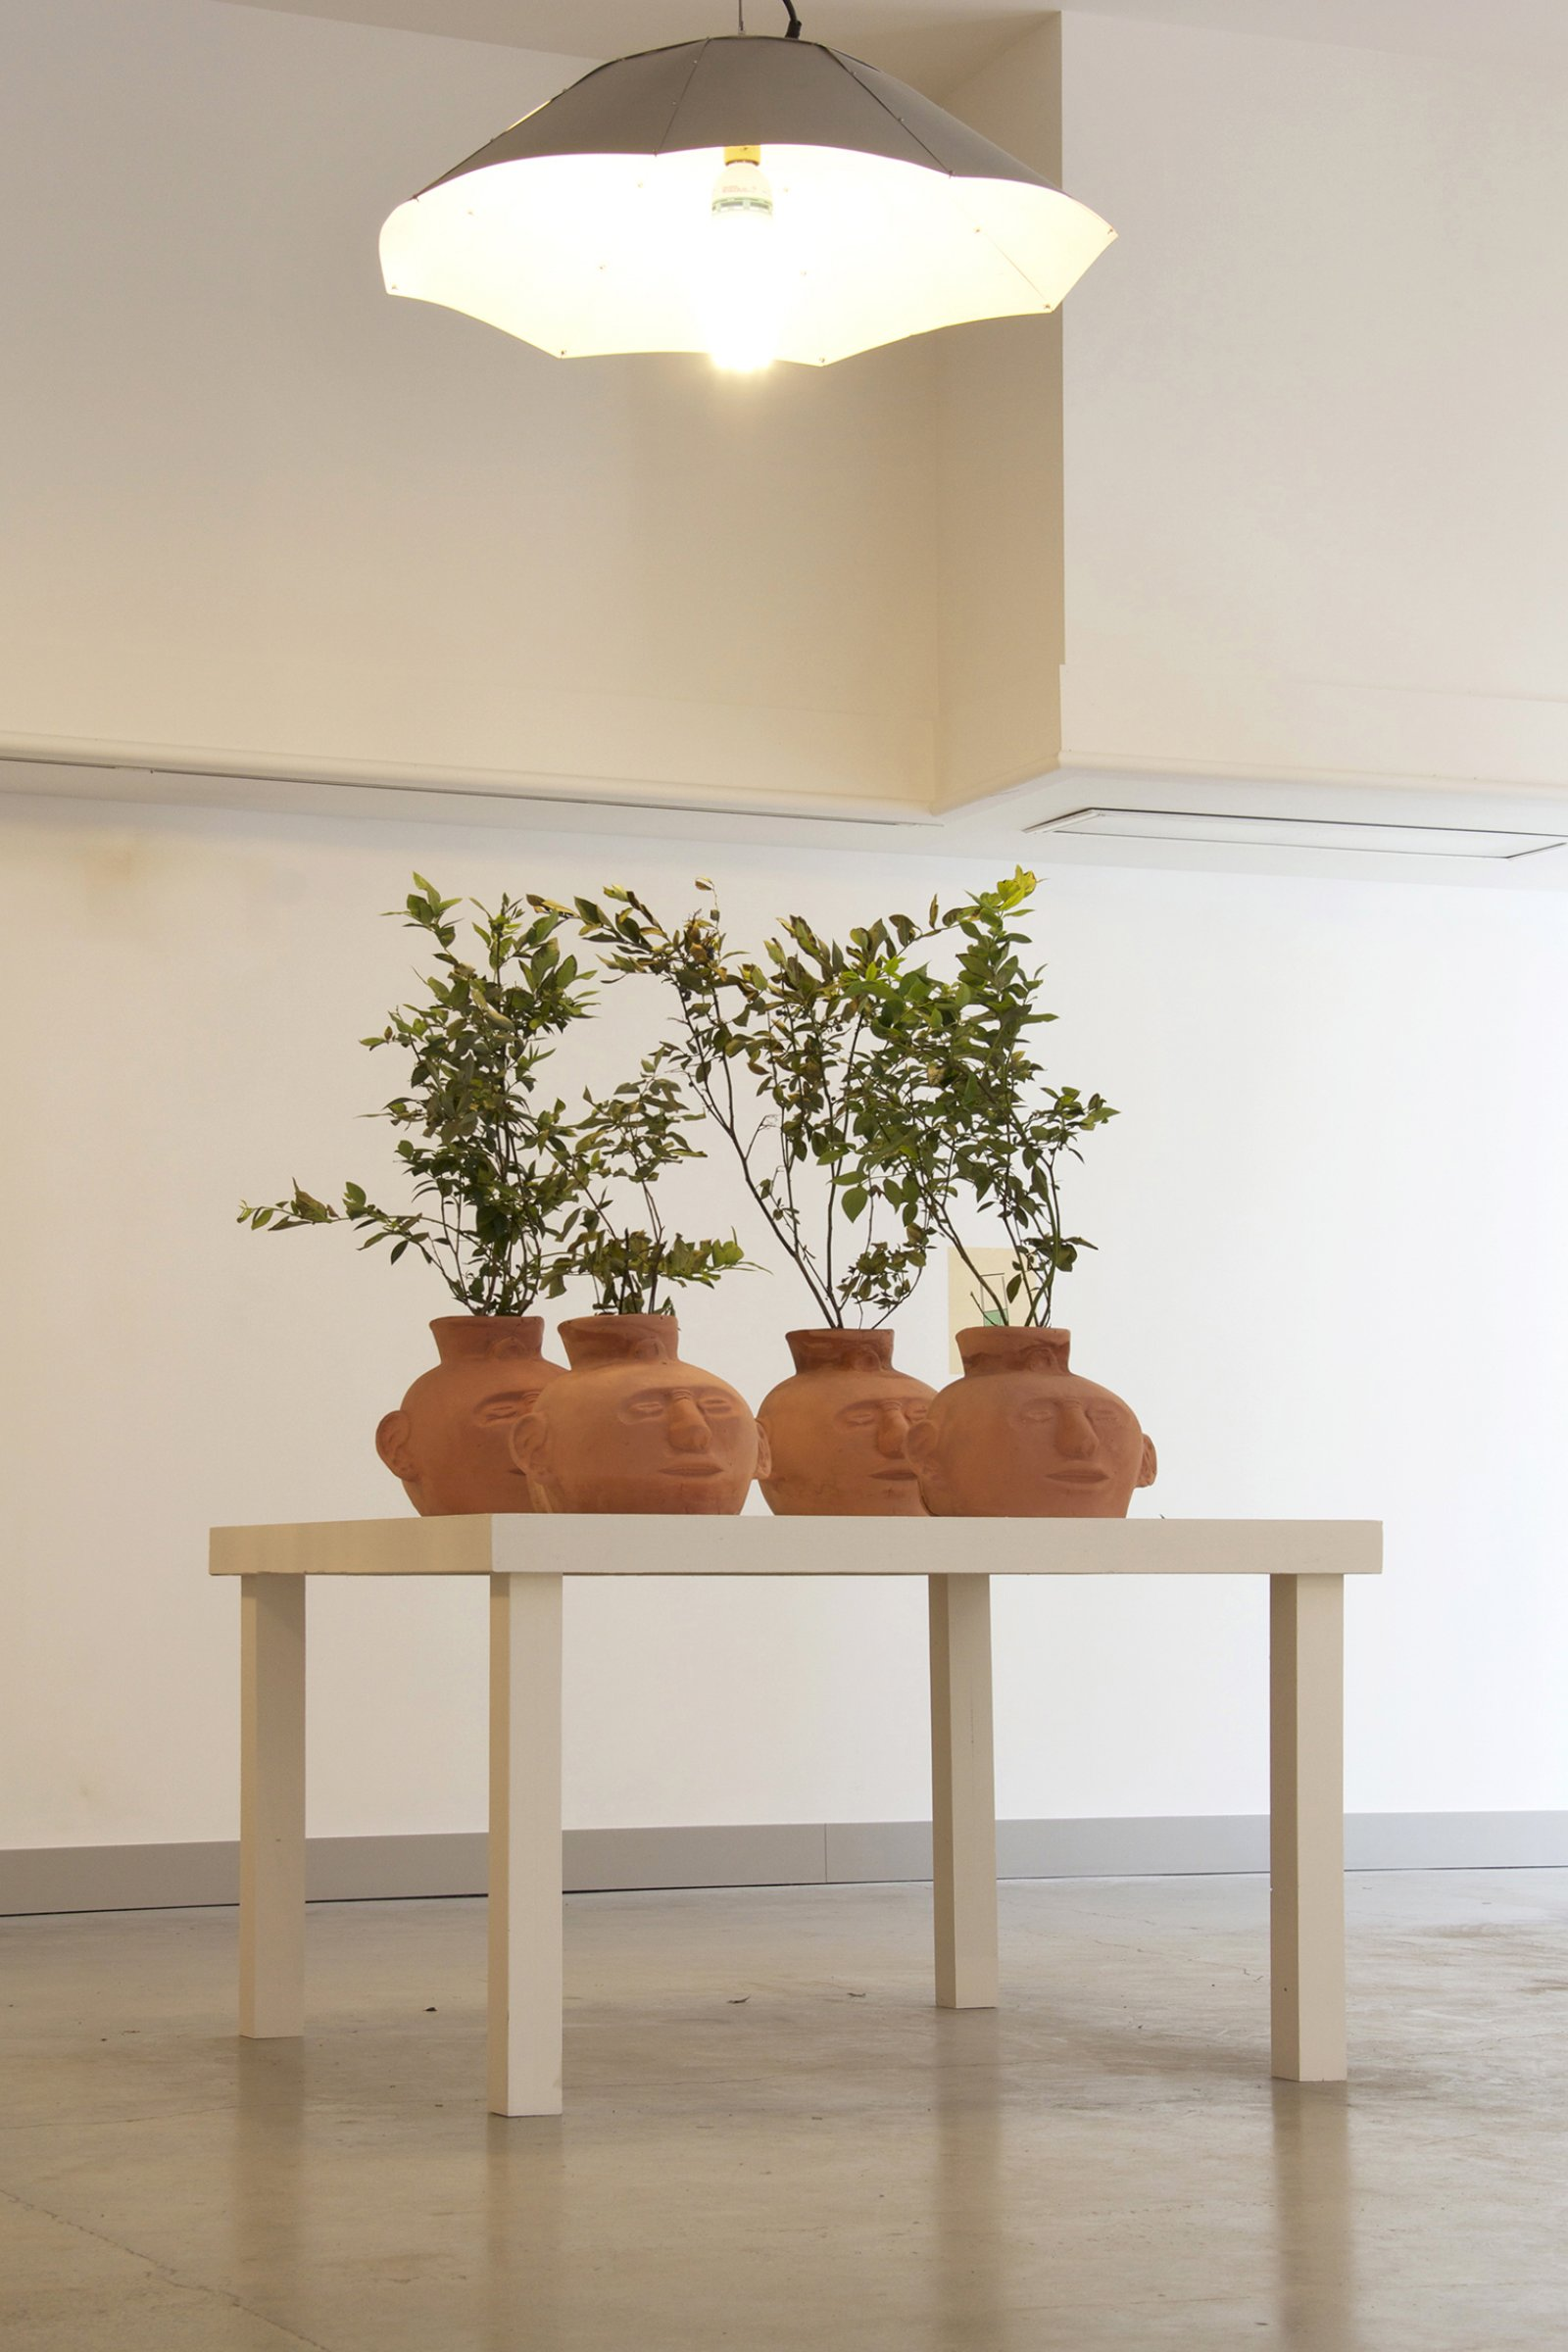 Duane Linklater,Blueberries for 12 Vessels, 2015, blueberry bushes, clay, earth, dimensions variable